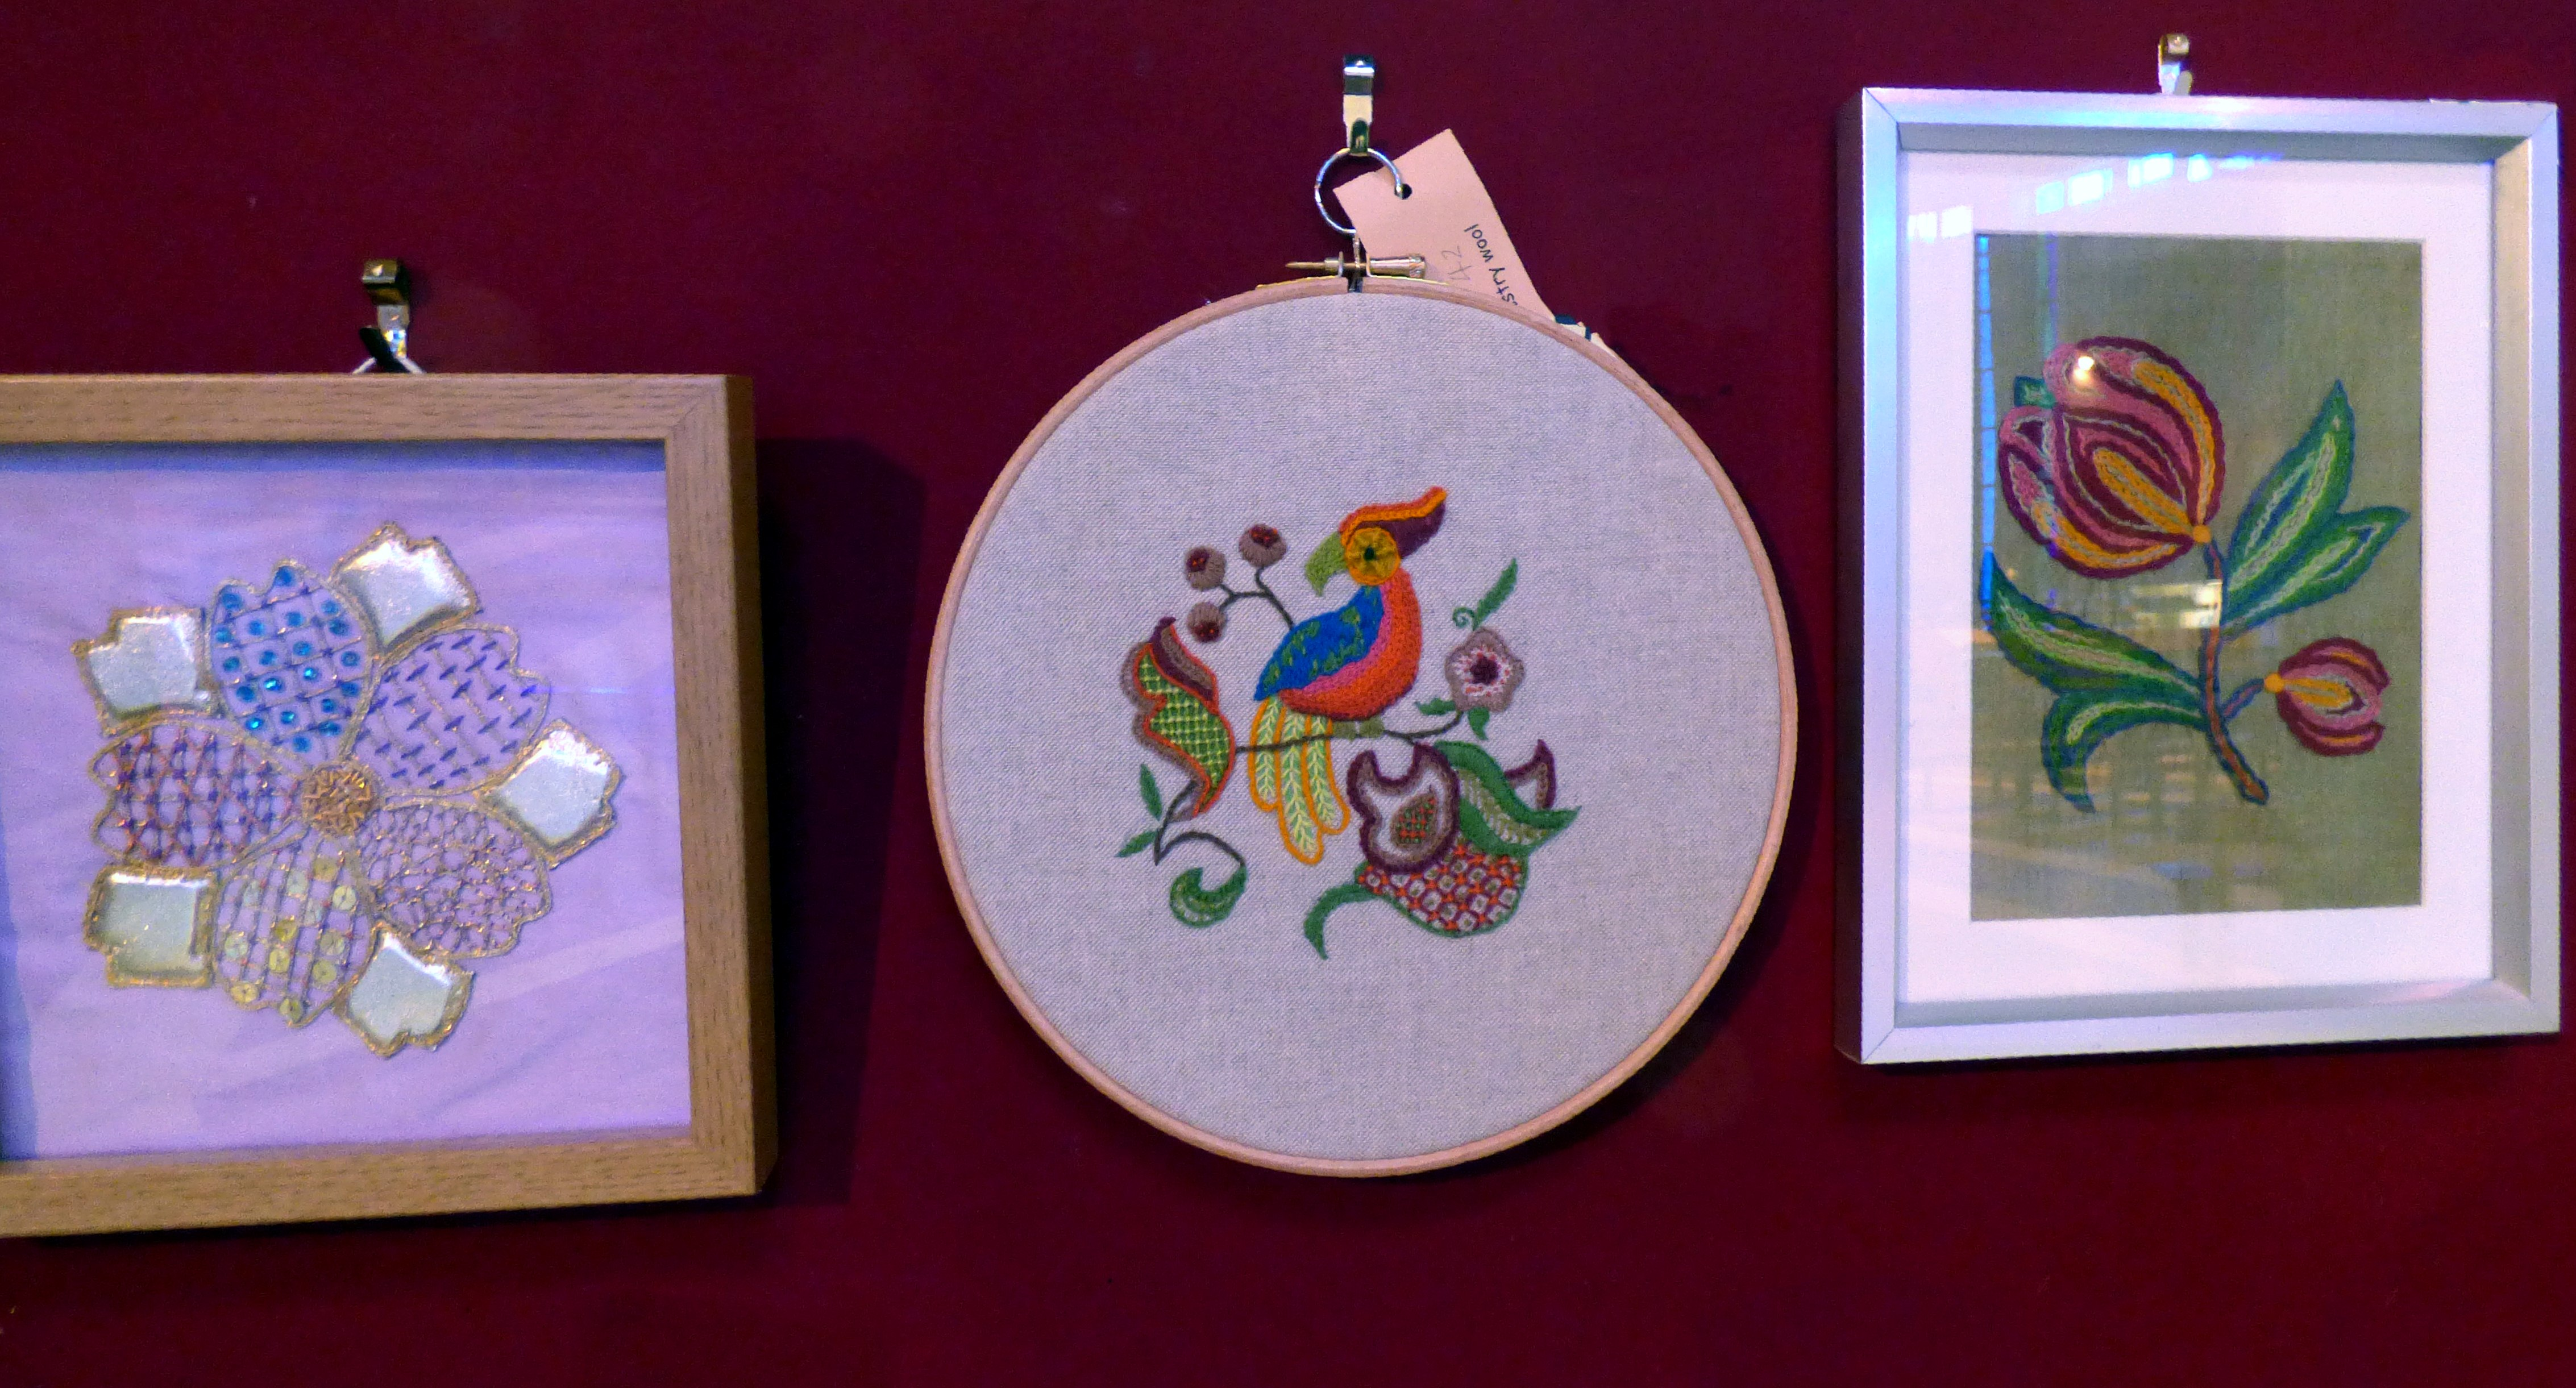 GOLDWORK by J.McParland, CREWELWORK by M.Andrews and ONE STITCH SAMPLER by A.Kefford , at Embroidery for Pleasure exhibition, Liverpool Metropolitan Cathedral 2016